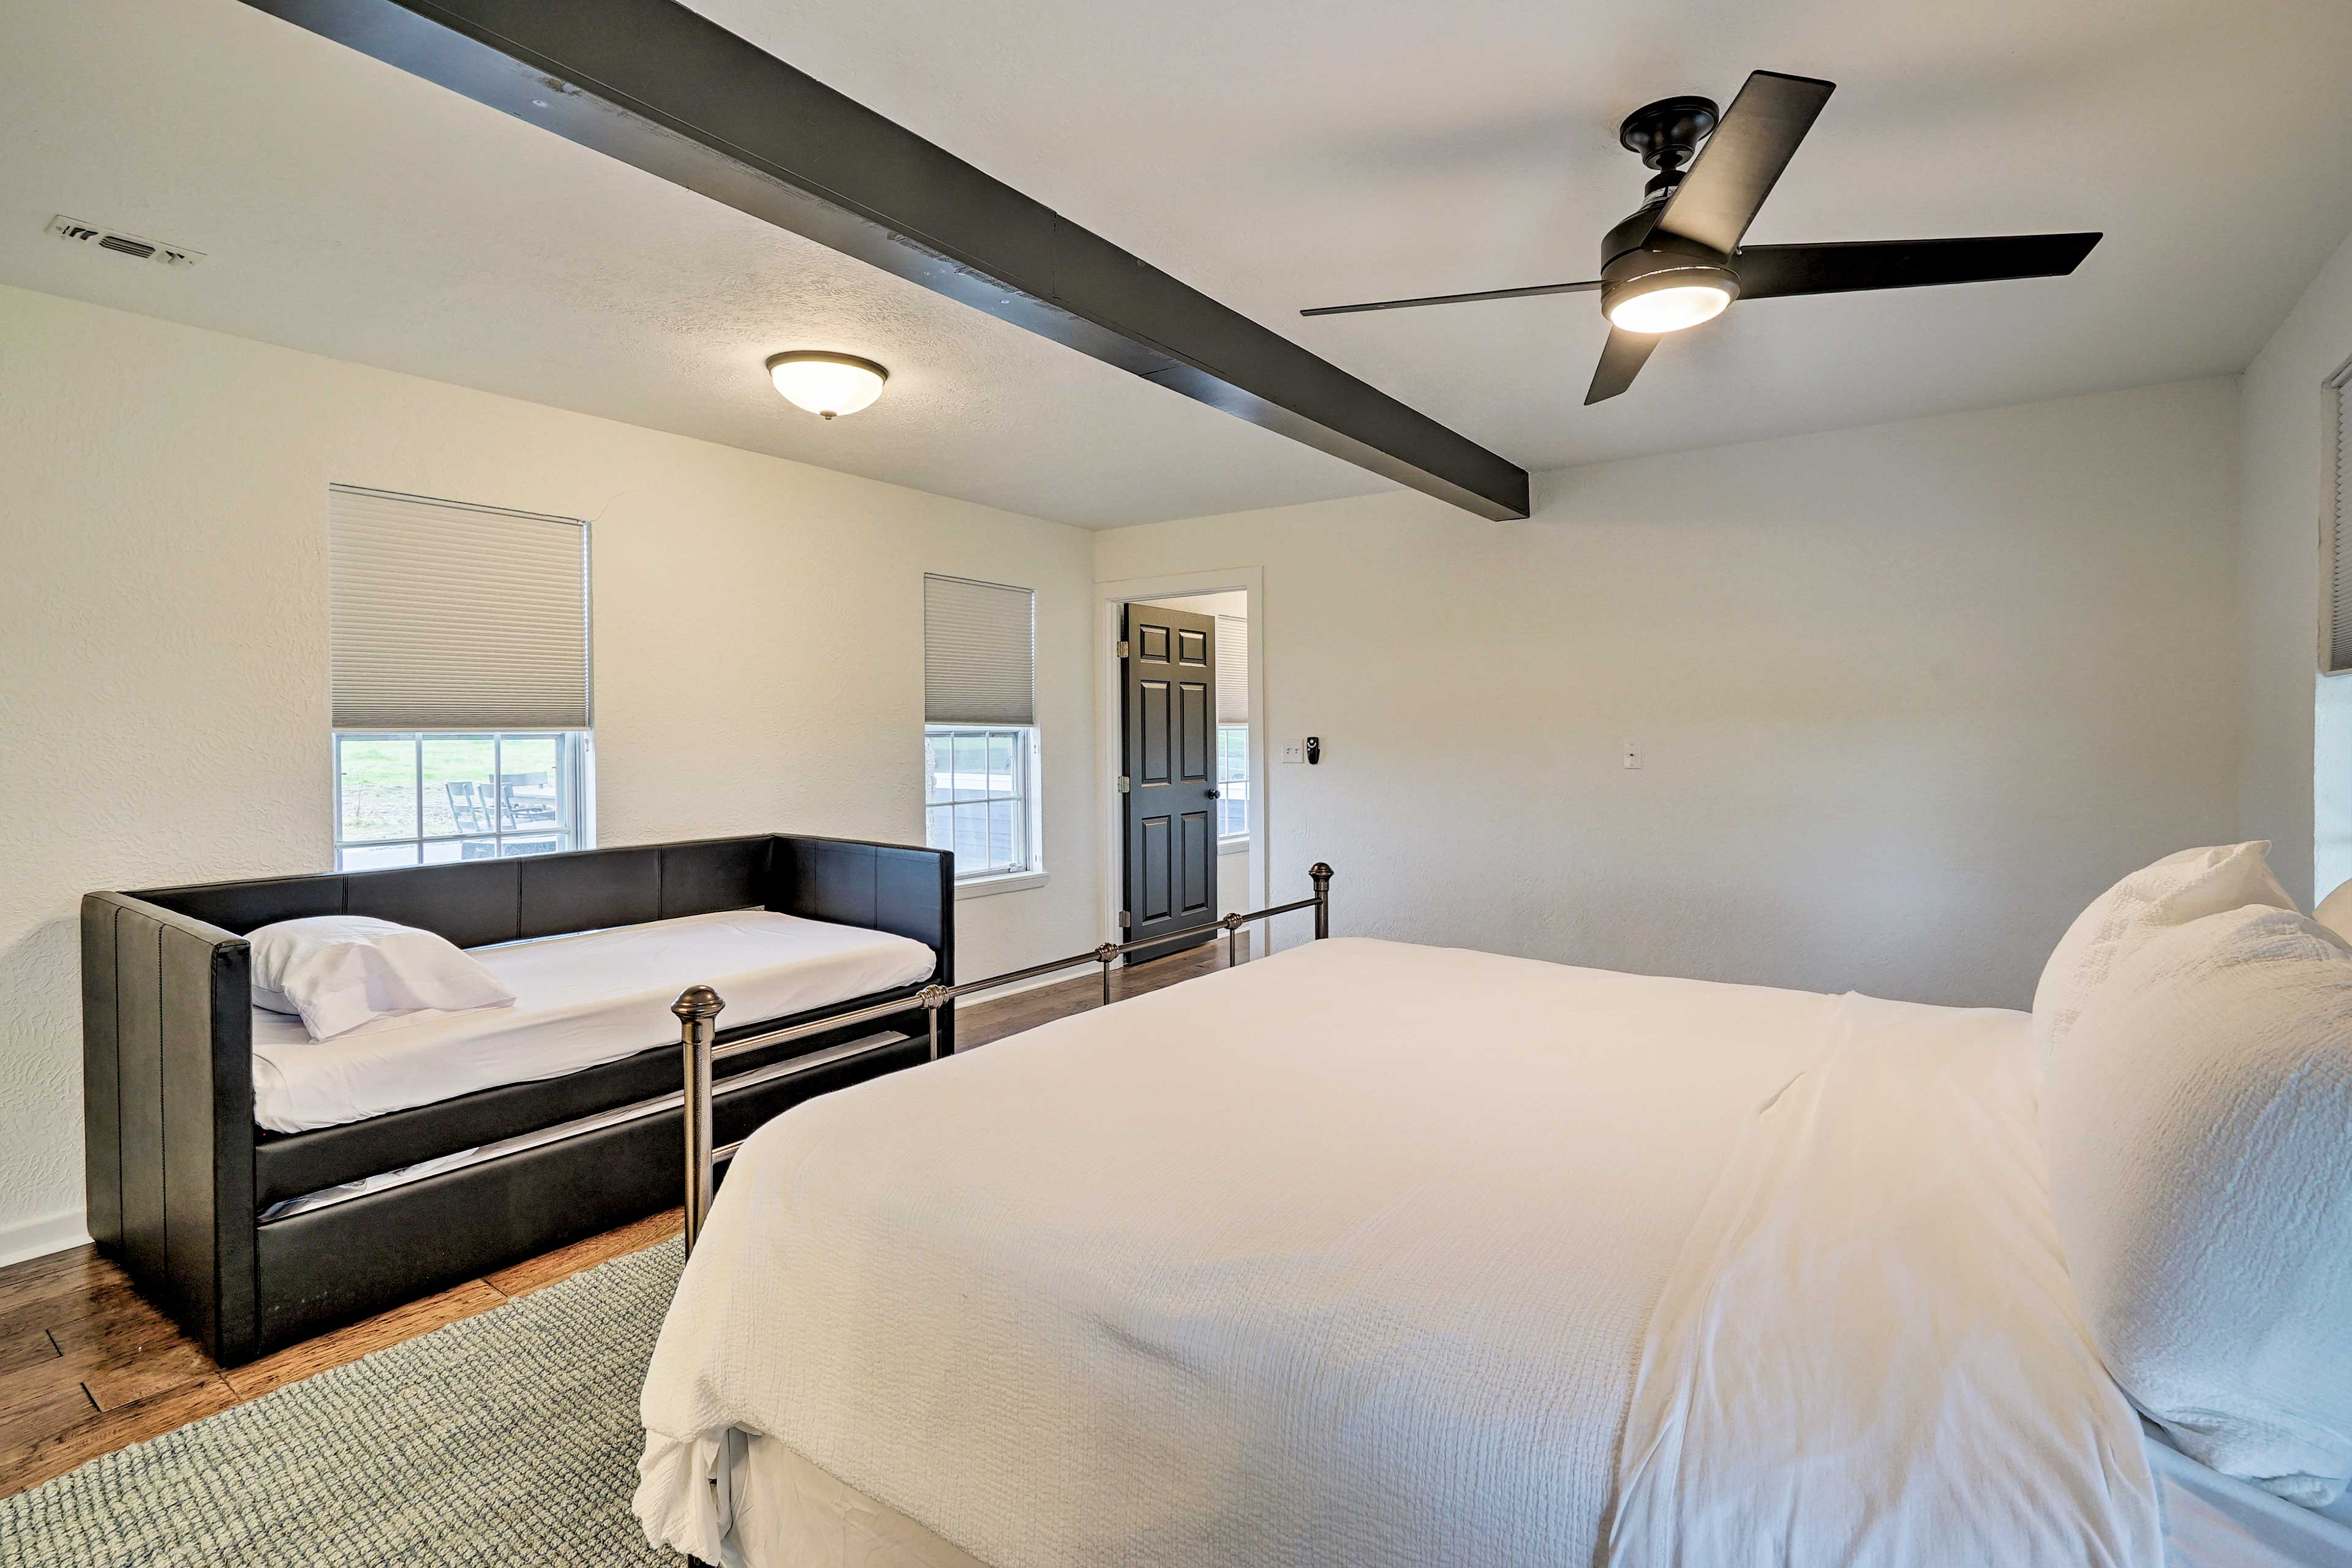 The master bedroom has space for up to 4 guests.